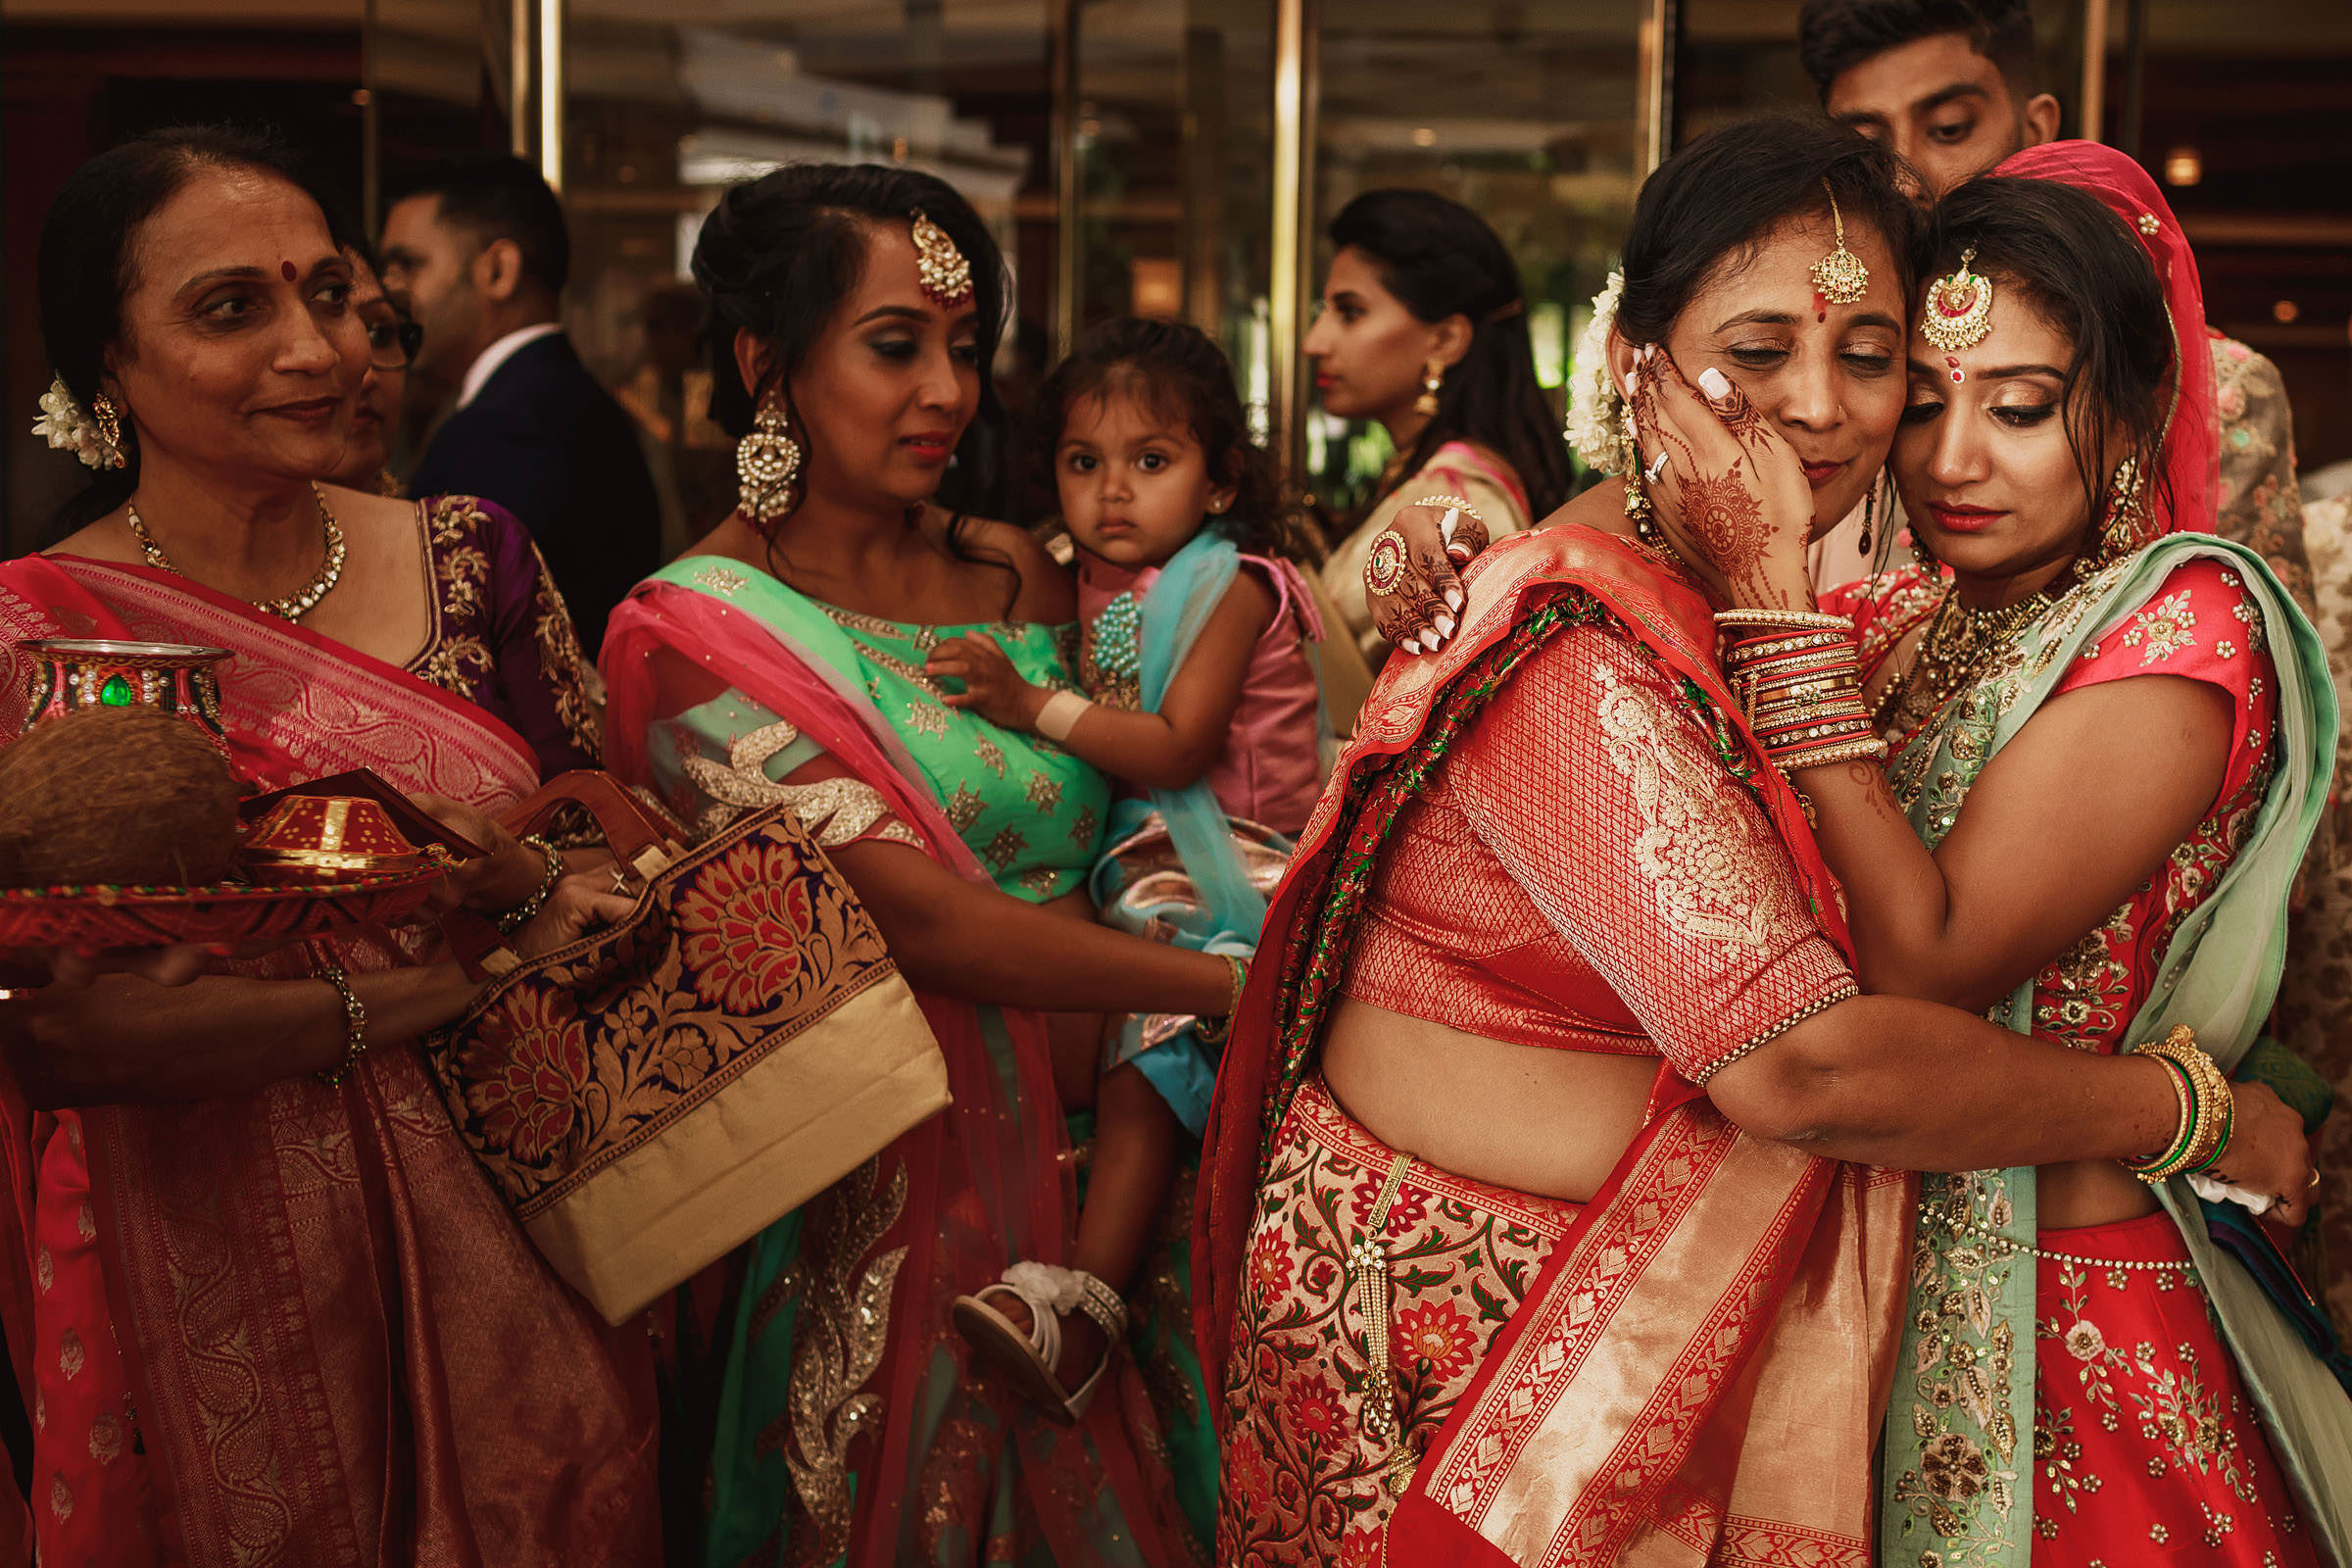 Mother and bride sharing a moment - photo by F5 Photography